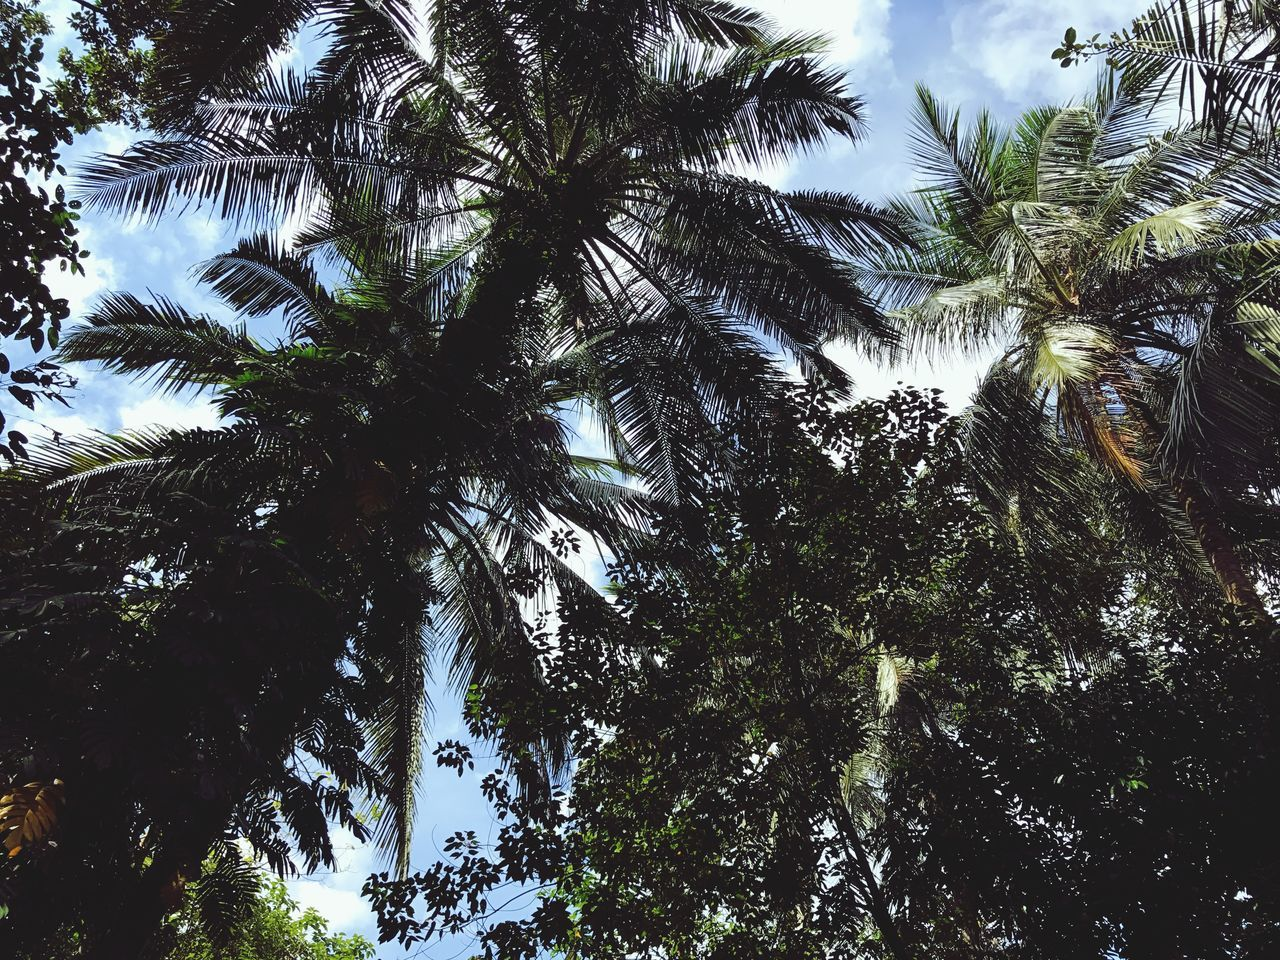 Outdoors Tree Low Angle View Nature Palm Tree No People Beauty In Nature Green Color Island